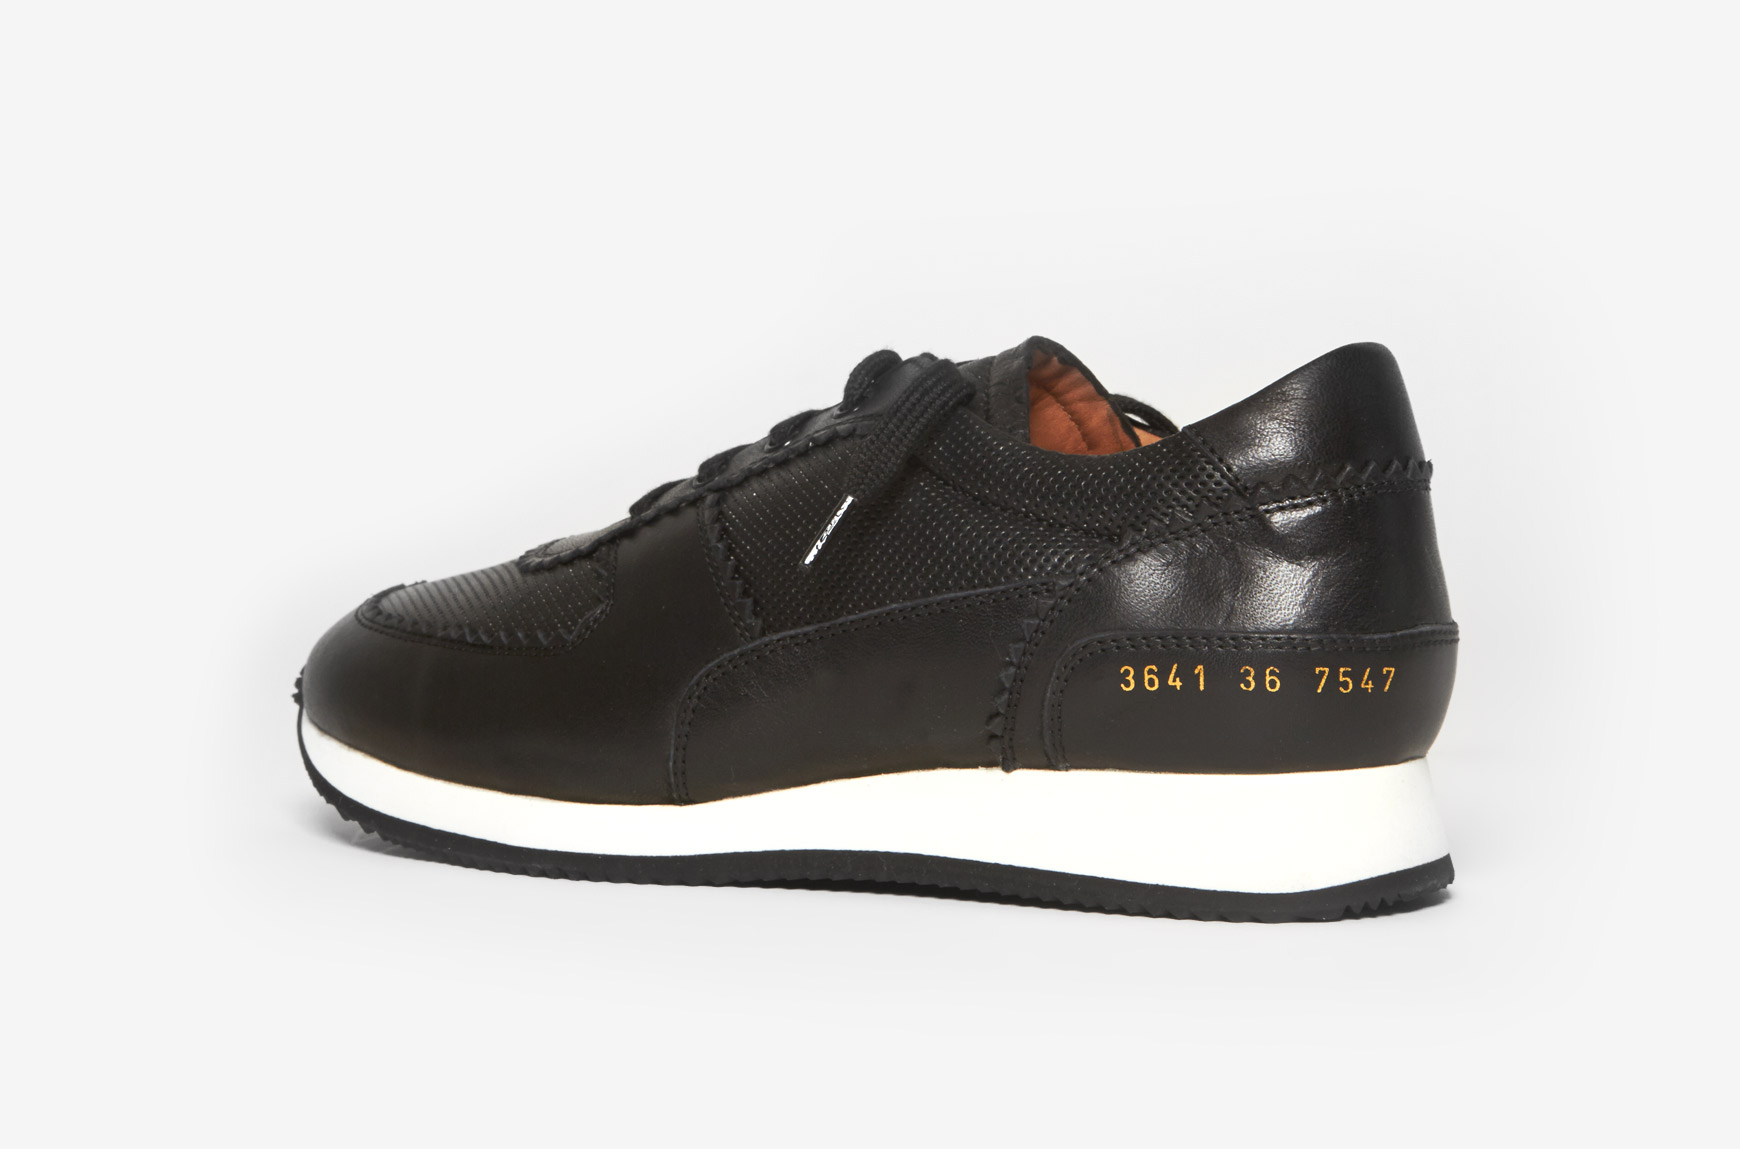 Lyst - Common Projects Track Shoe in Black